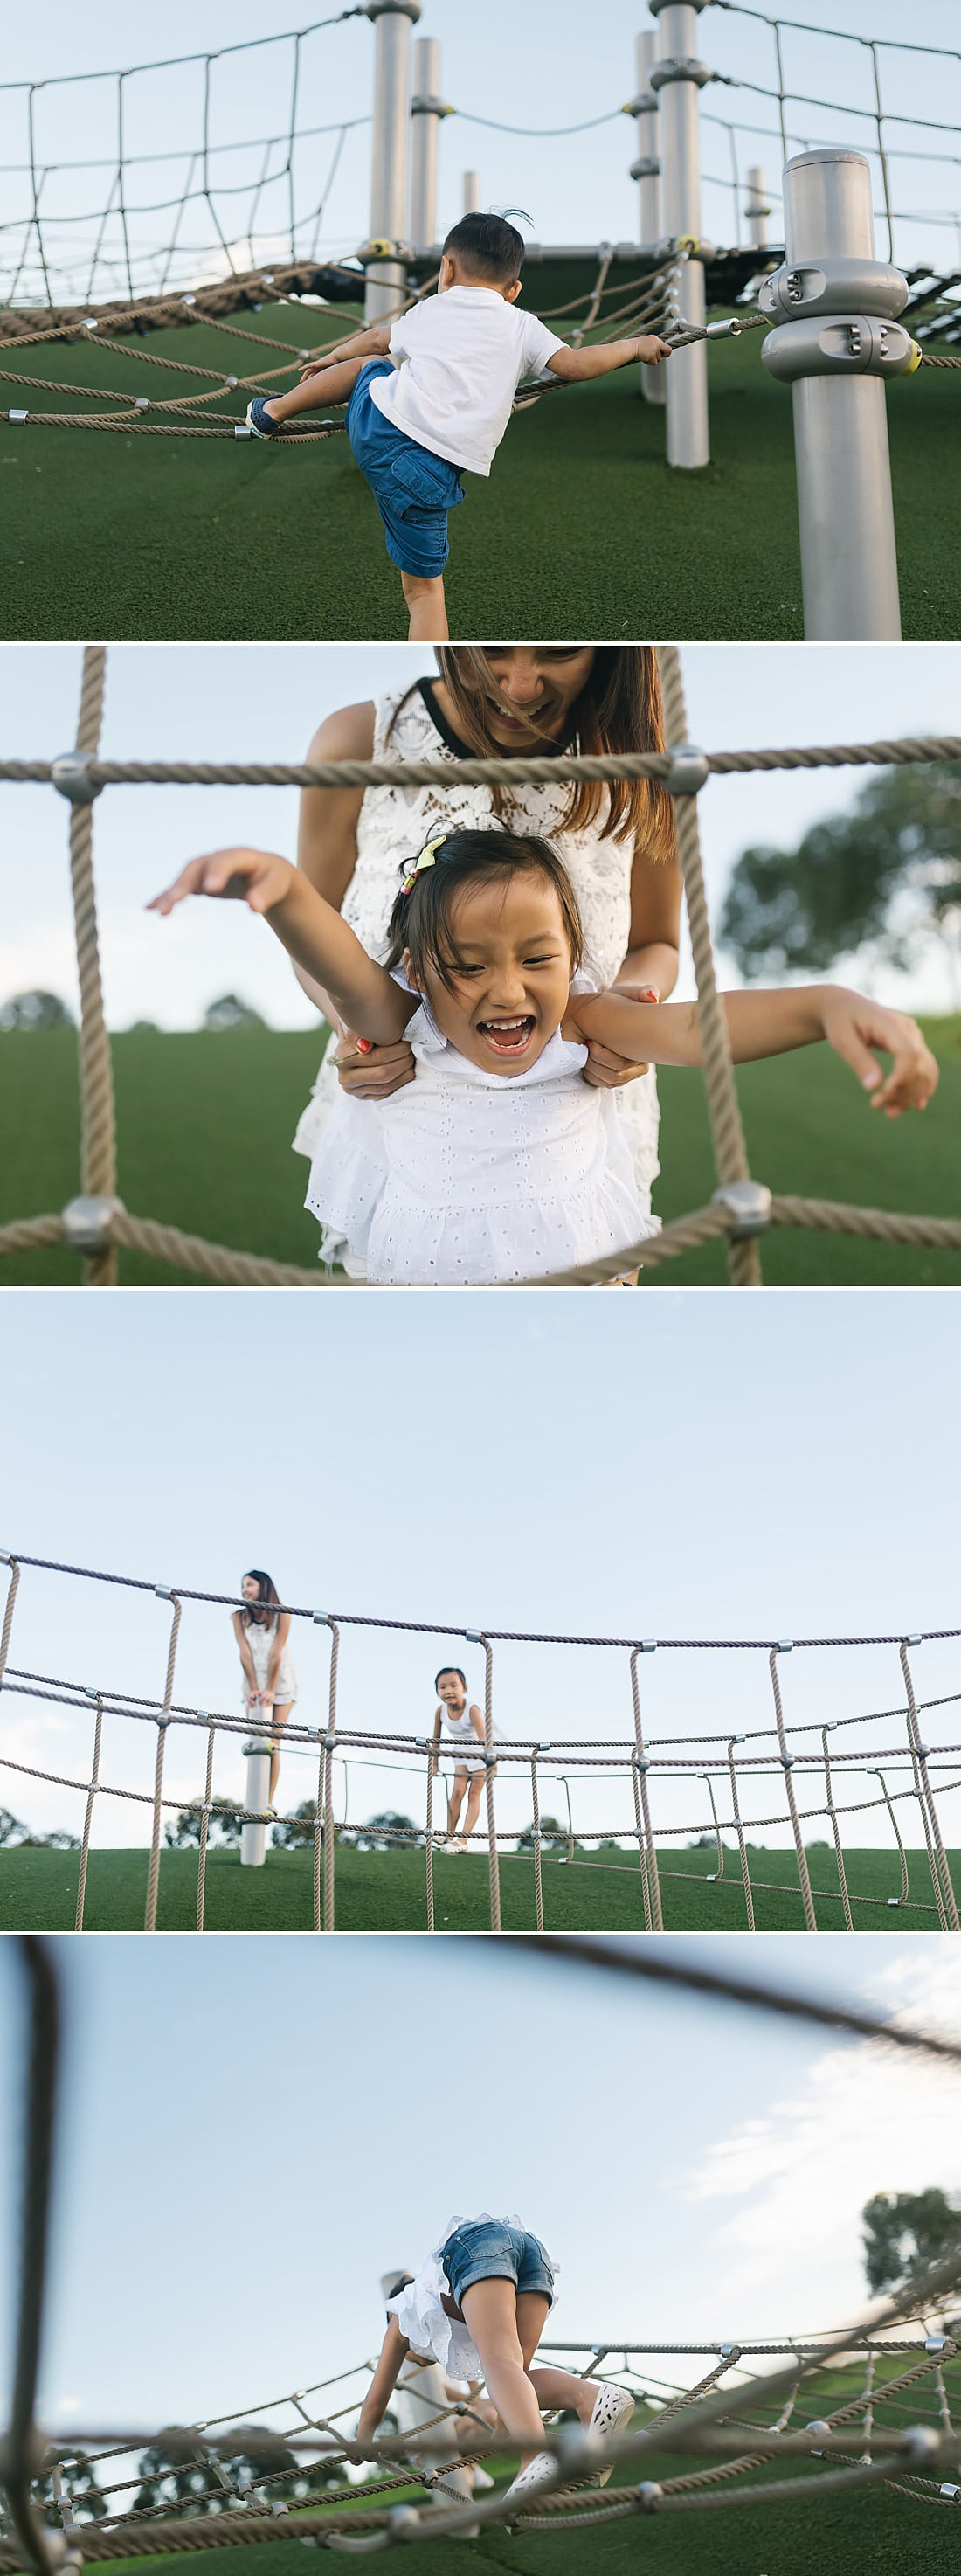 Candid-family-photography-sydney-sutherland-shire